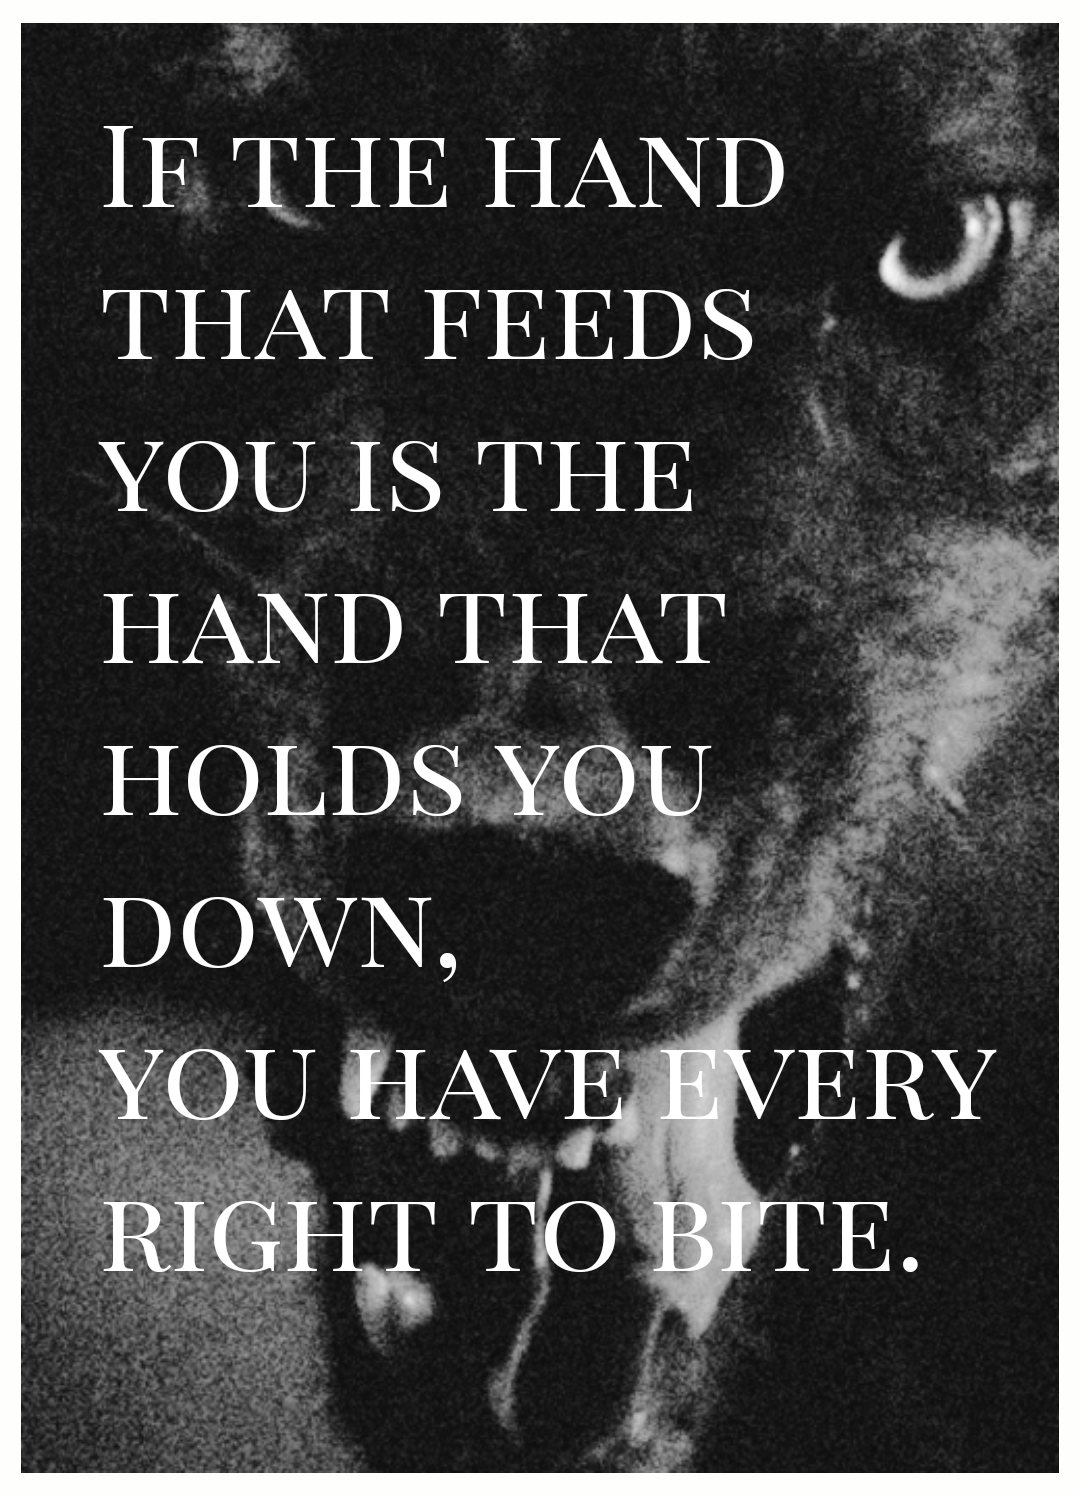 [IMAGE] The hand that feeds you…